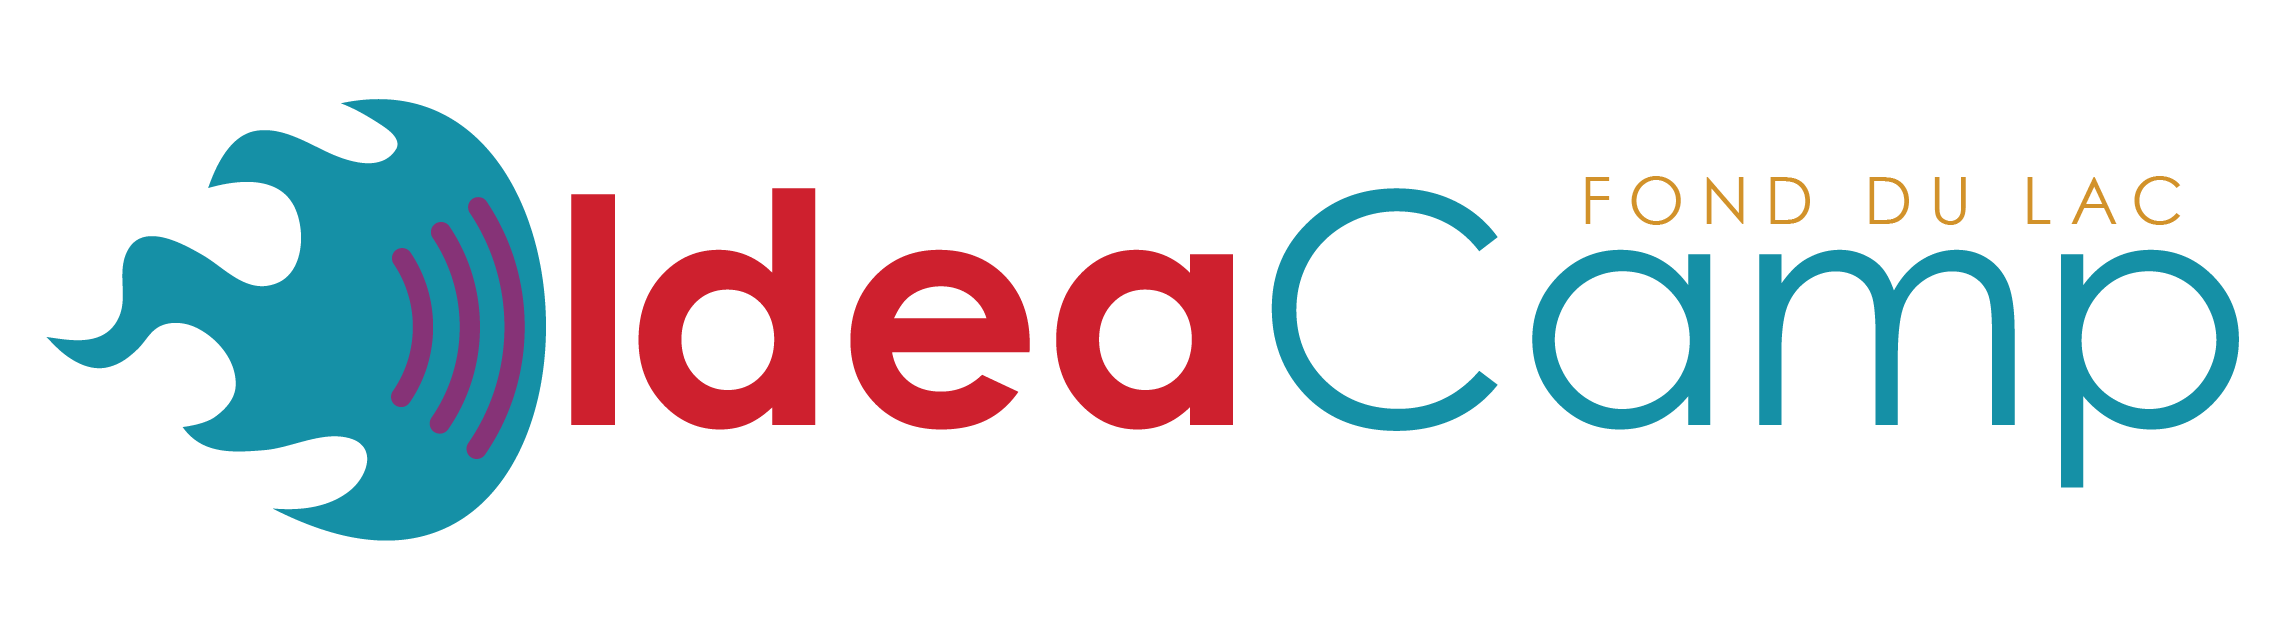 IdeaCamp logo